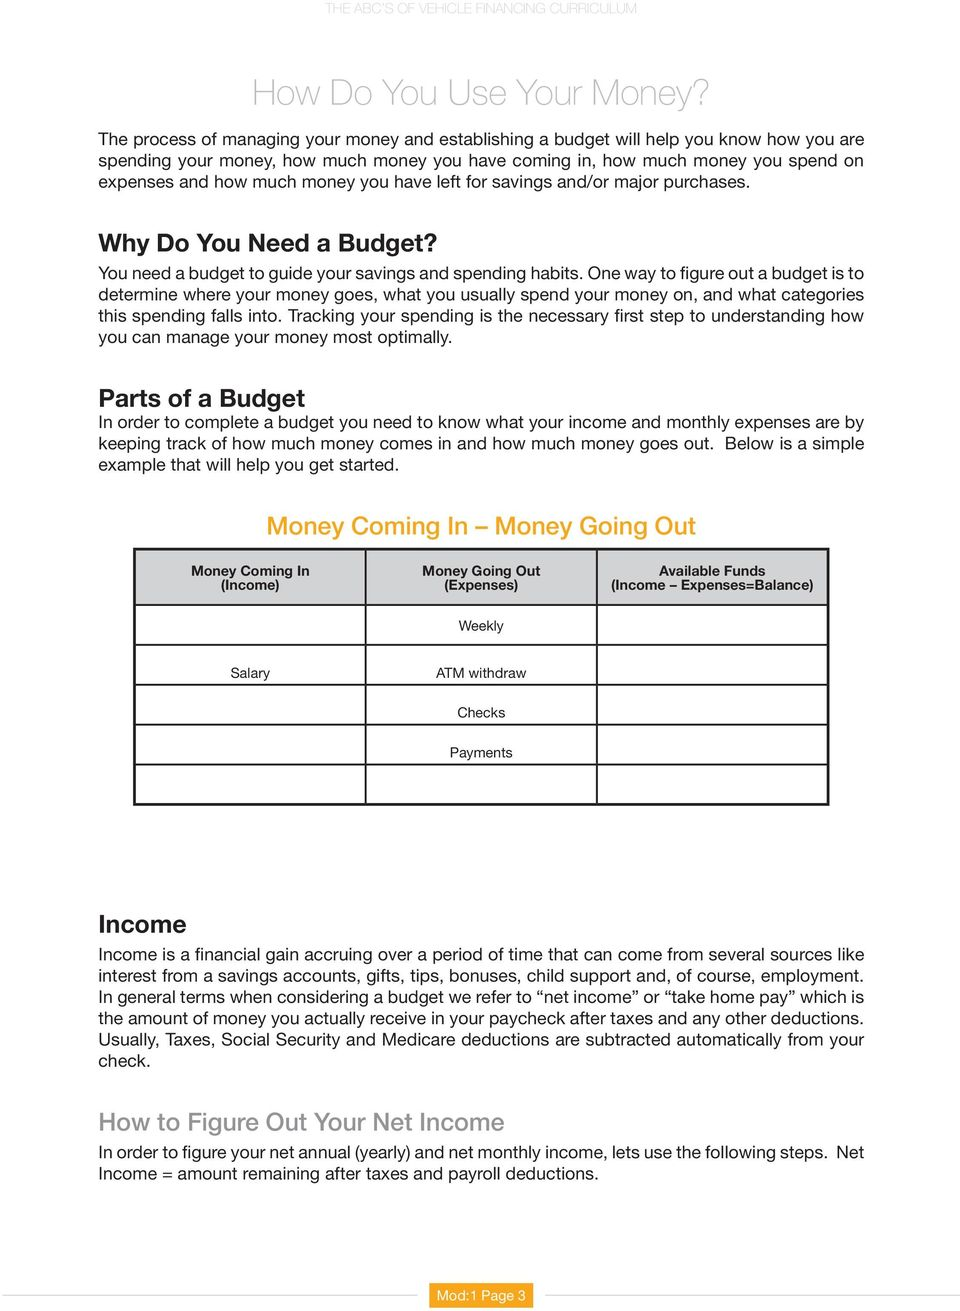 money you have left for savings and/or major purchases. Why Do You Need a Budget? You need a budget to guide your savings and spending habits.